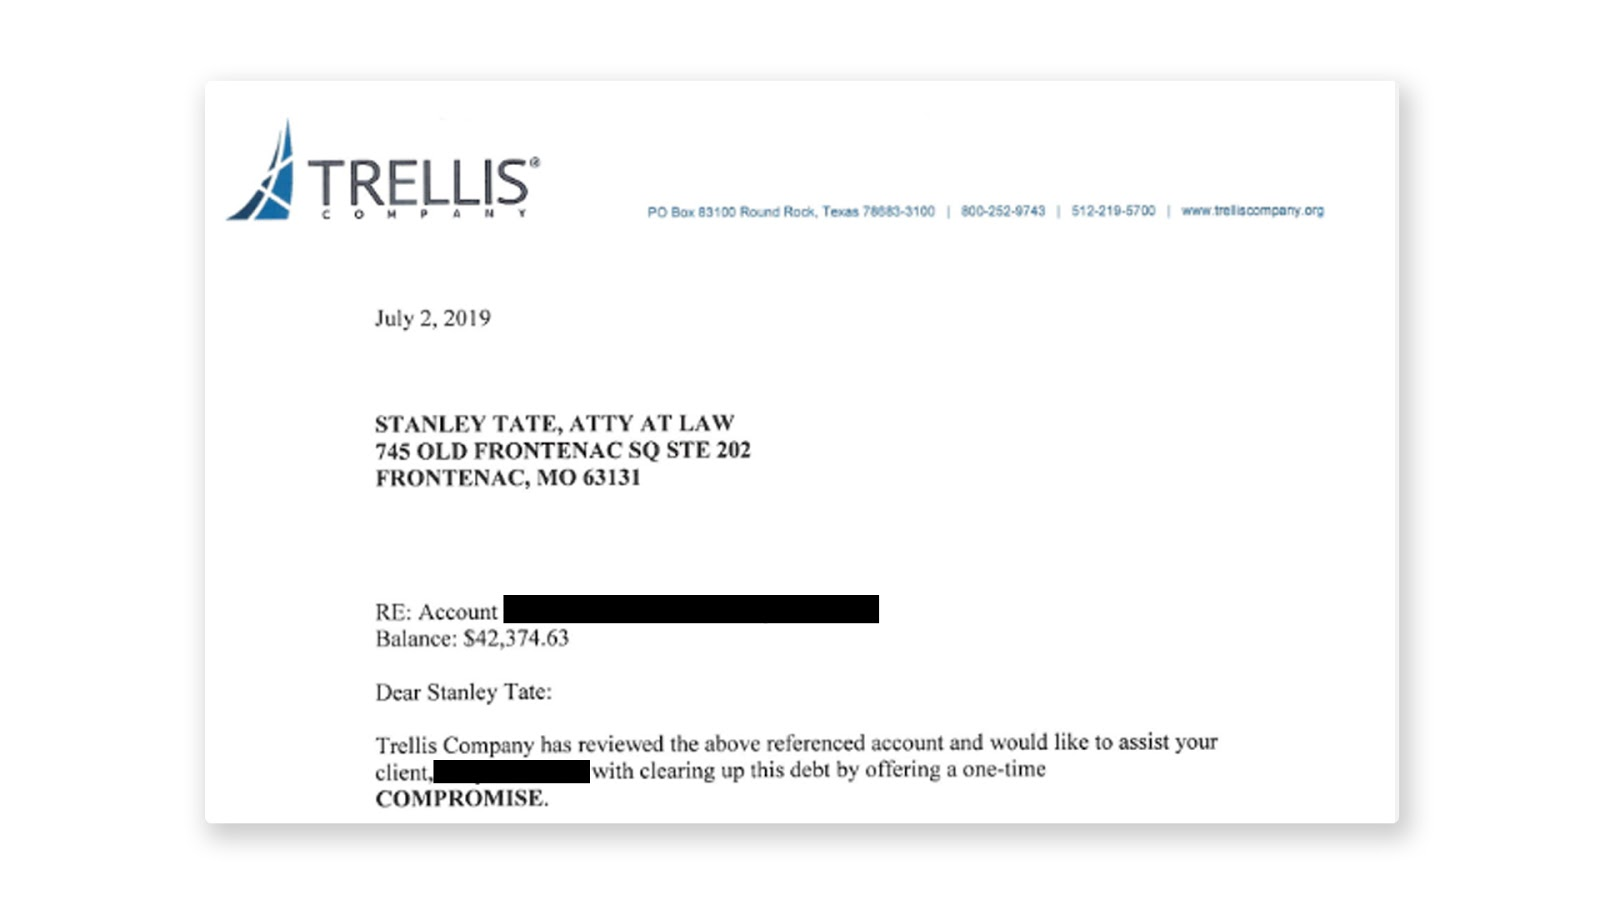 Trellis defaulted student loan settlement letter